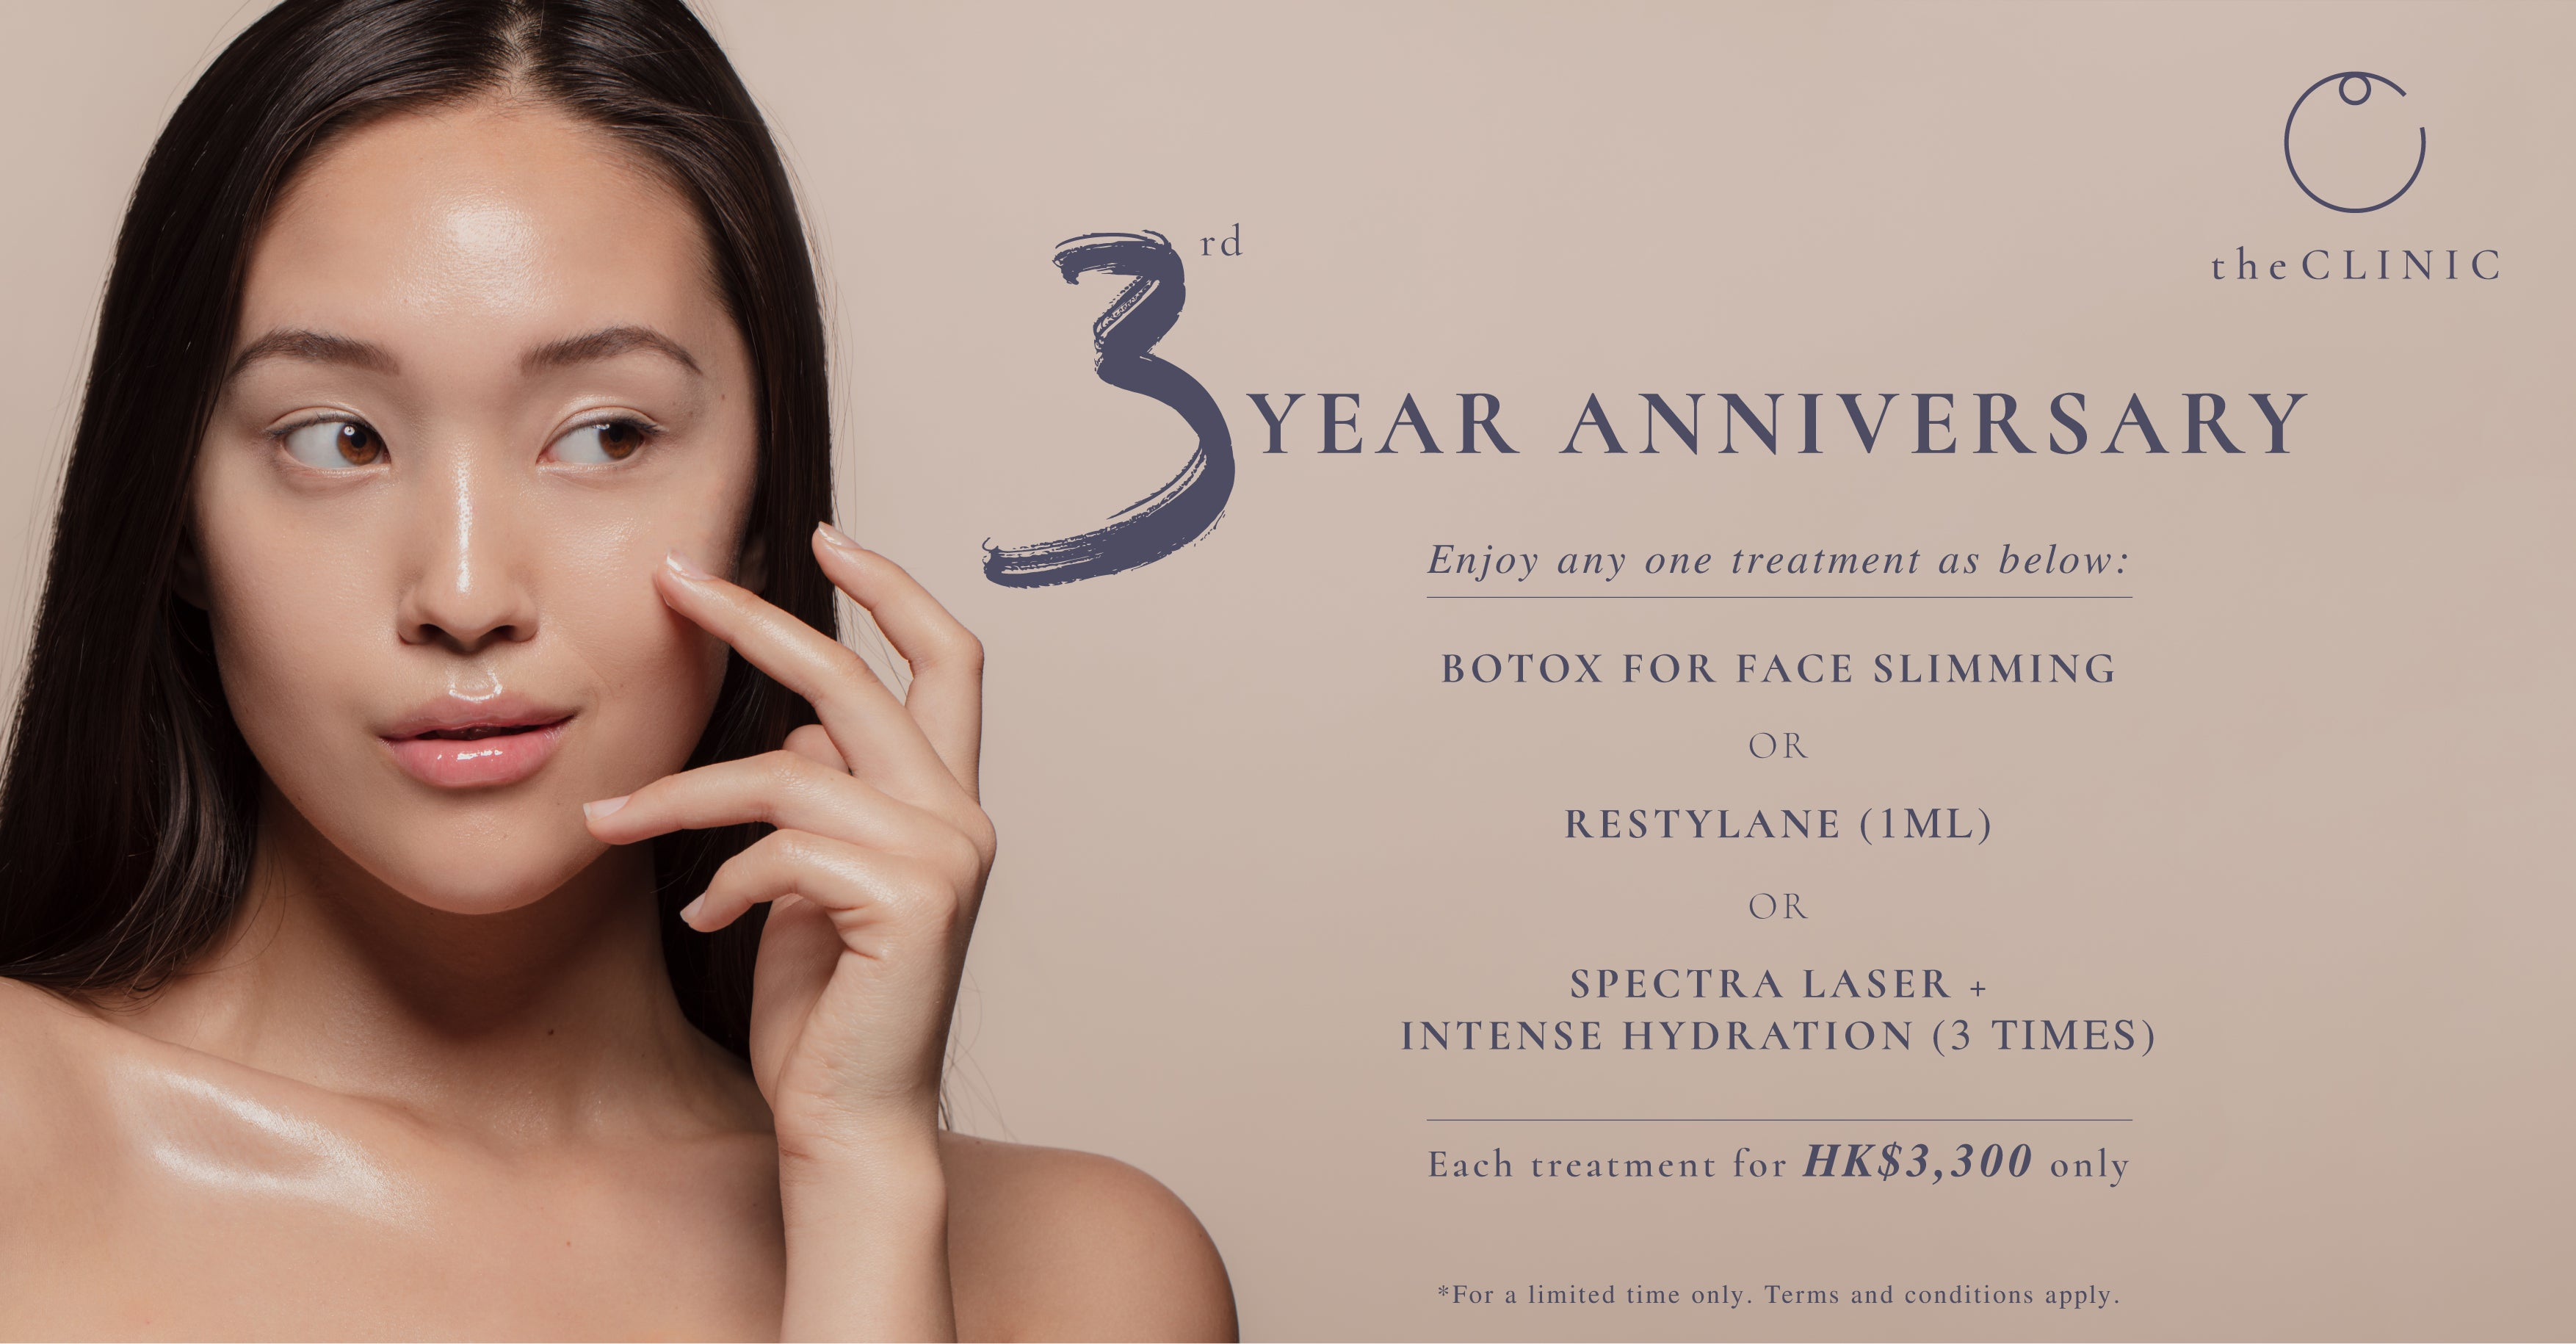 The CLINIC_3rdYearAnniversary_Special Promotion